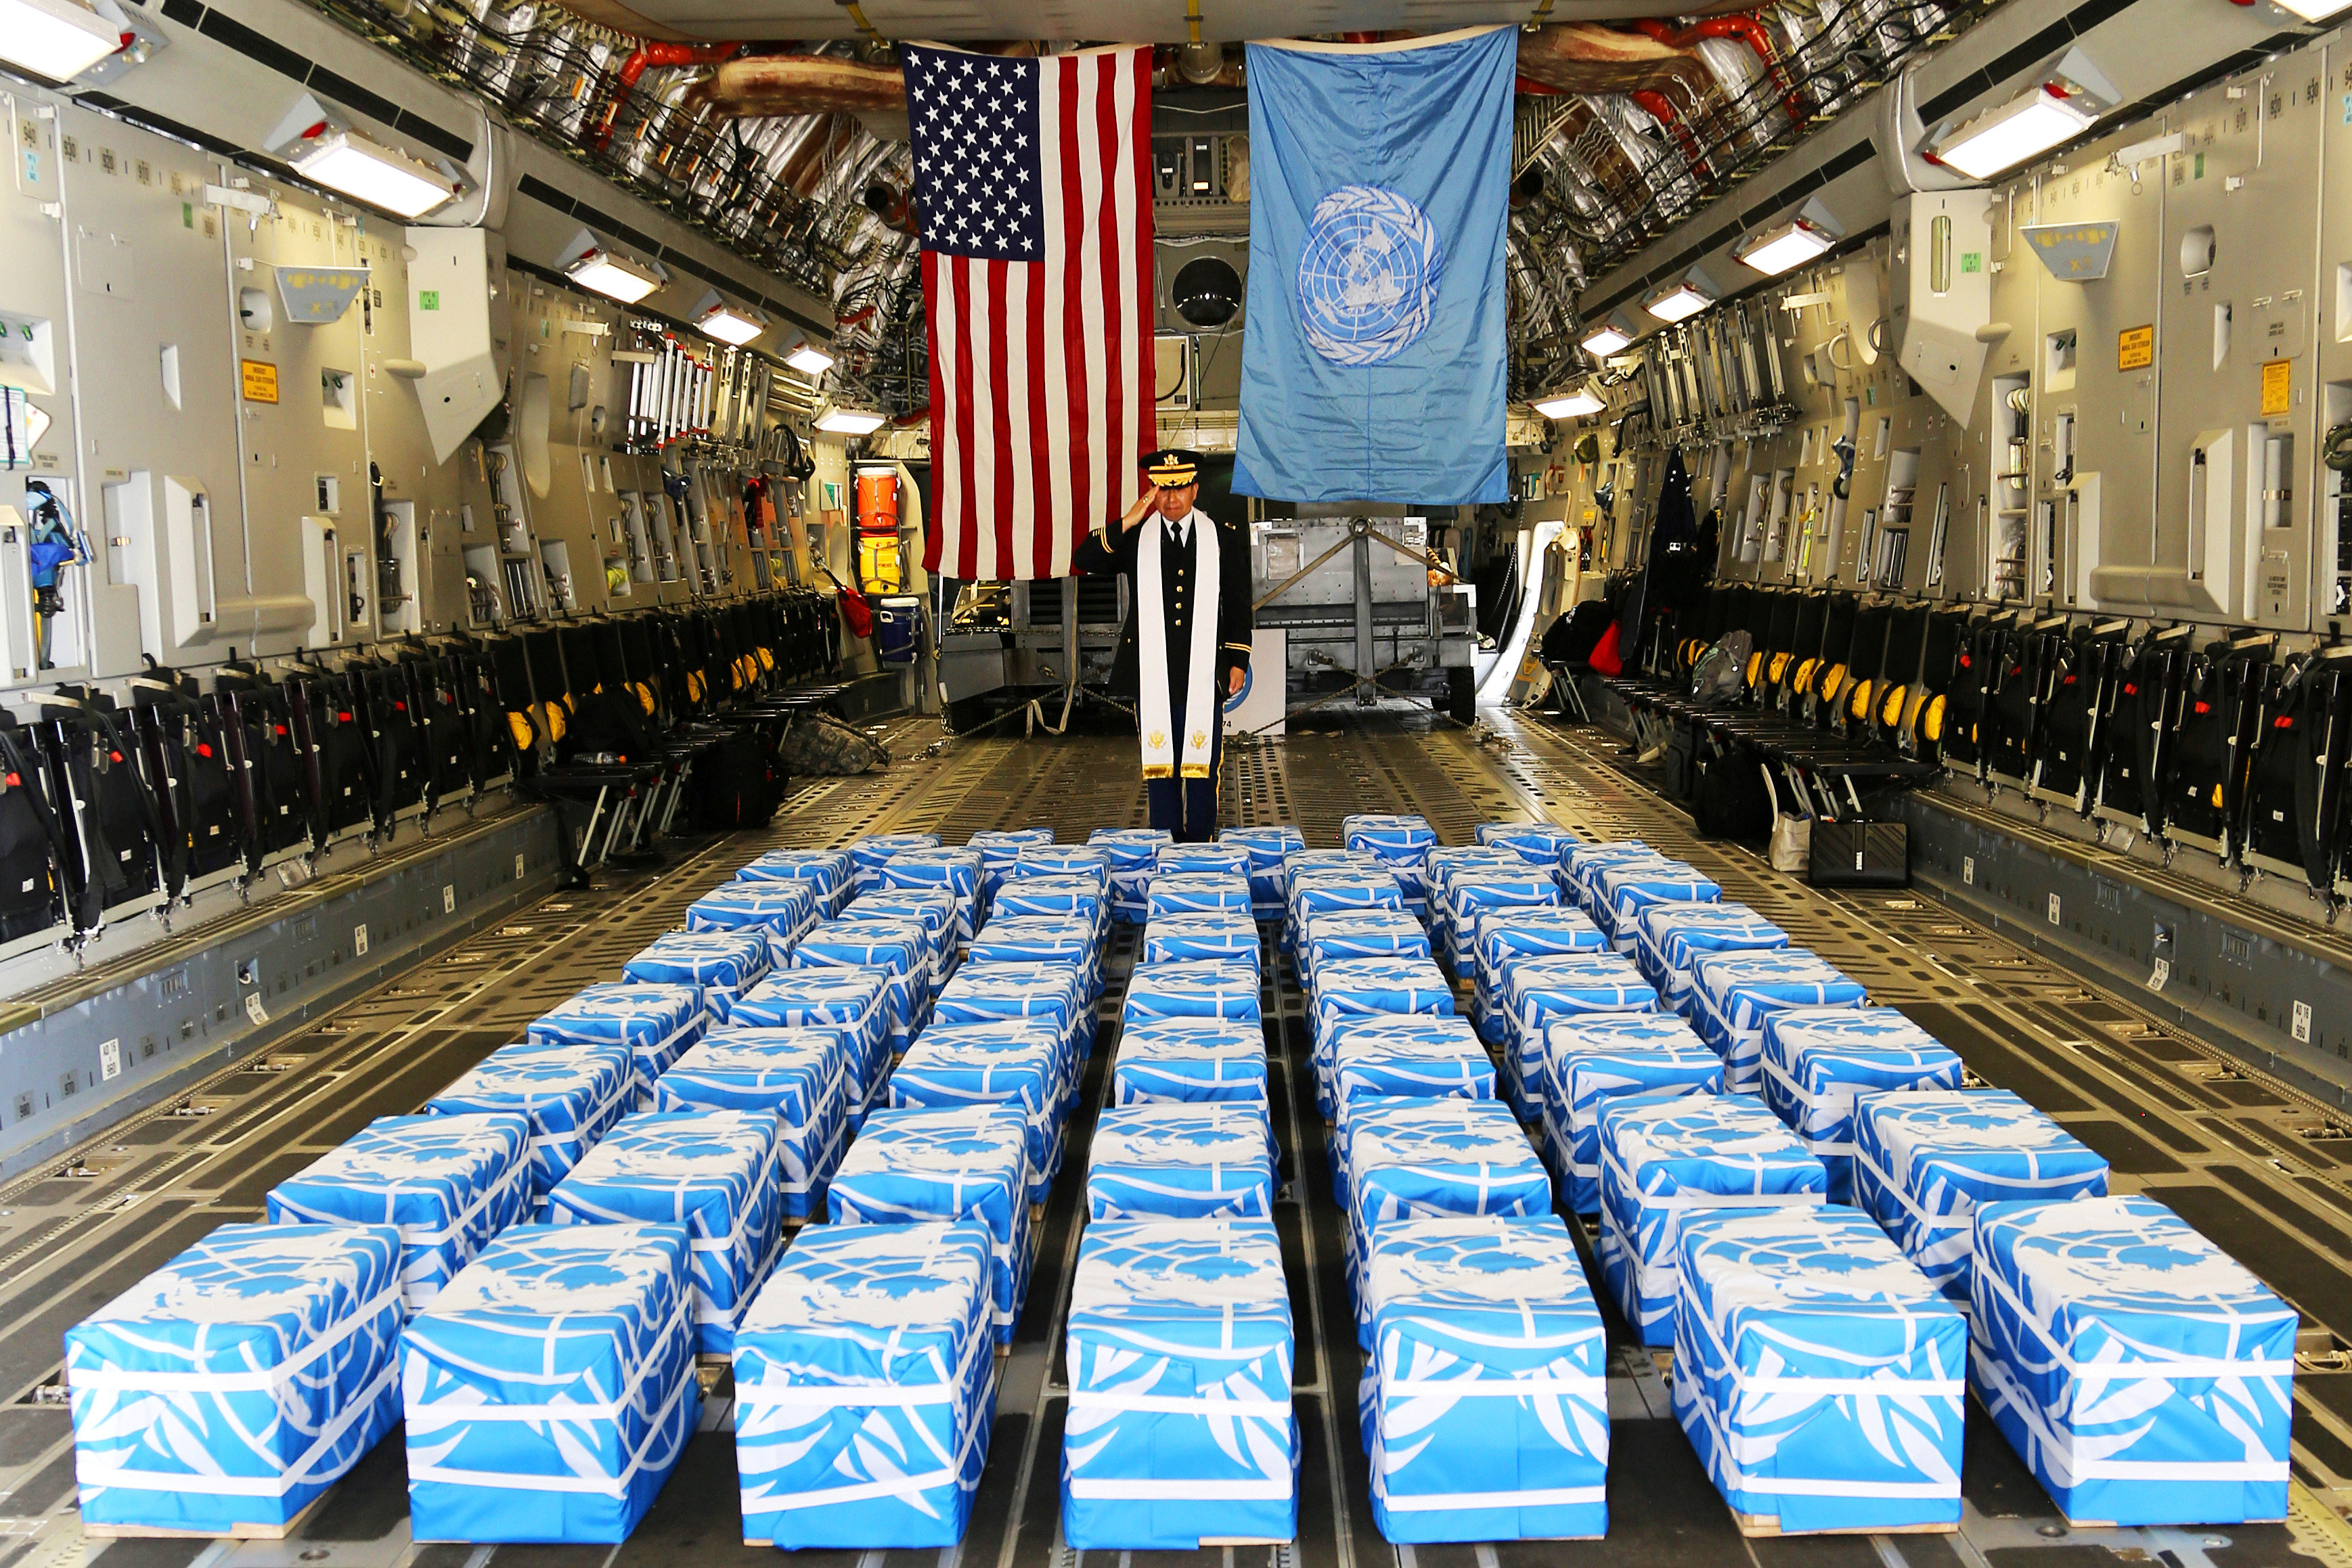 United Nations Command Chaplain U.S. Army Col. Sam Lee performs a blessing of sacrifice and remembrance on the 55 boxes of remains thought to be of U.S. soldiers killed in the 1950-53 Korean War, returned by North Korea to the U.S., at the Osan Air Base in South Korea, July 27, 2018. U.S. Army/ Sgt. Quince Lanford/Handout via REUTERS